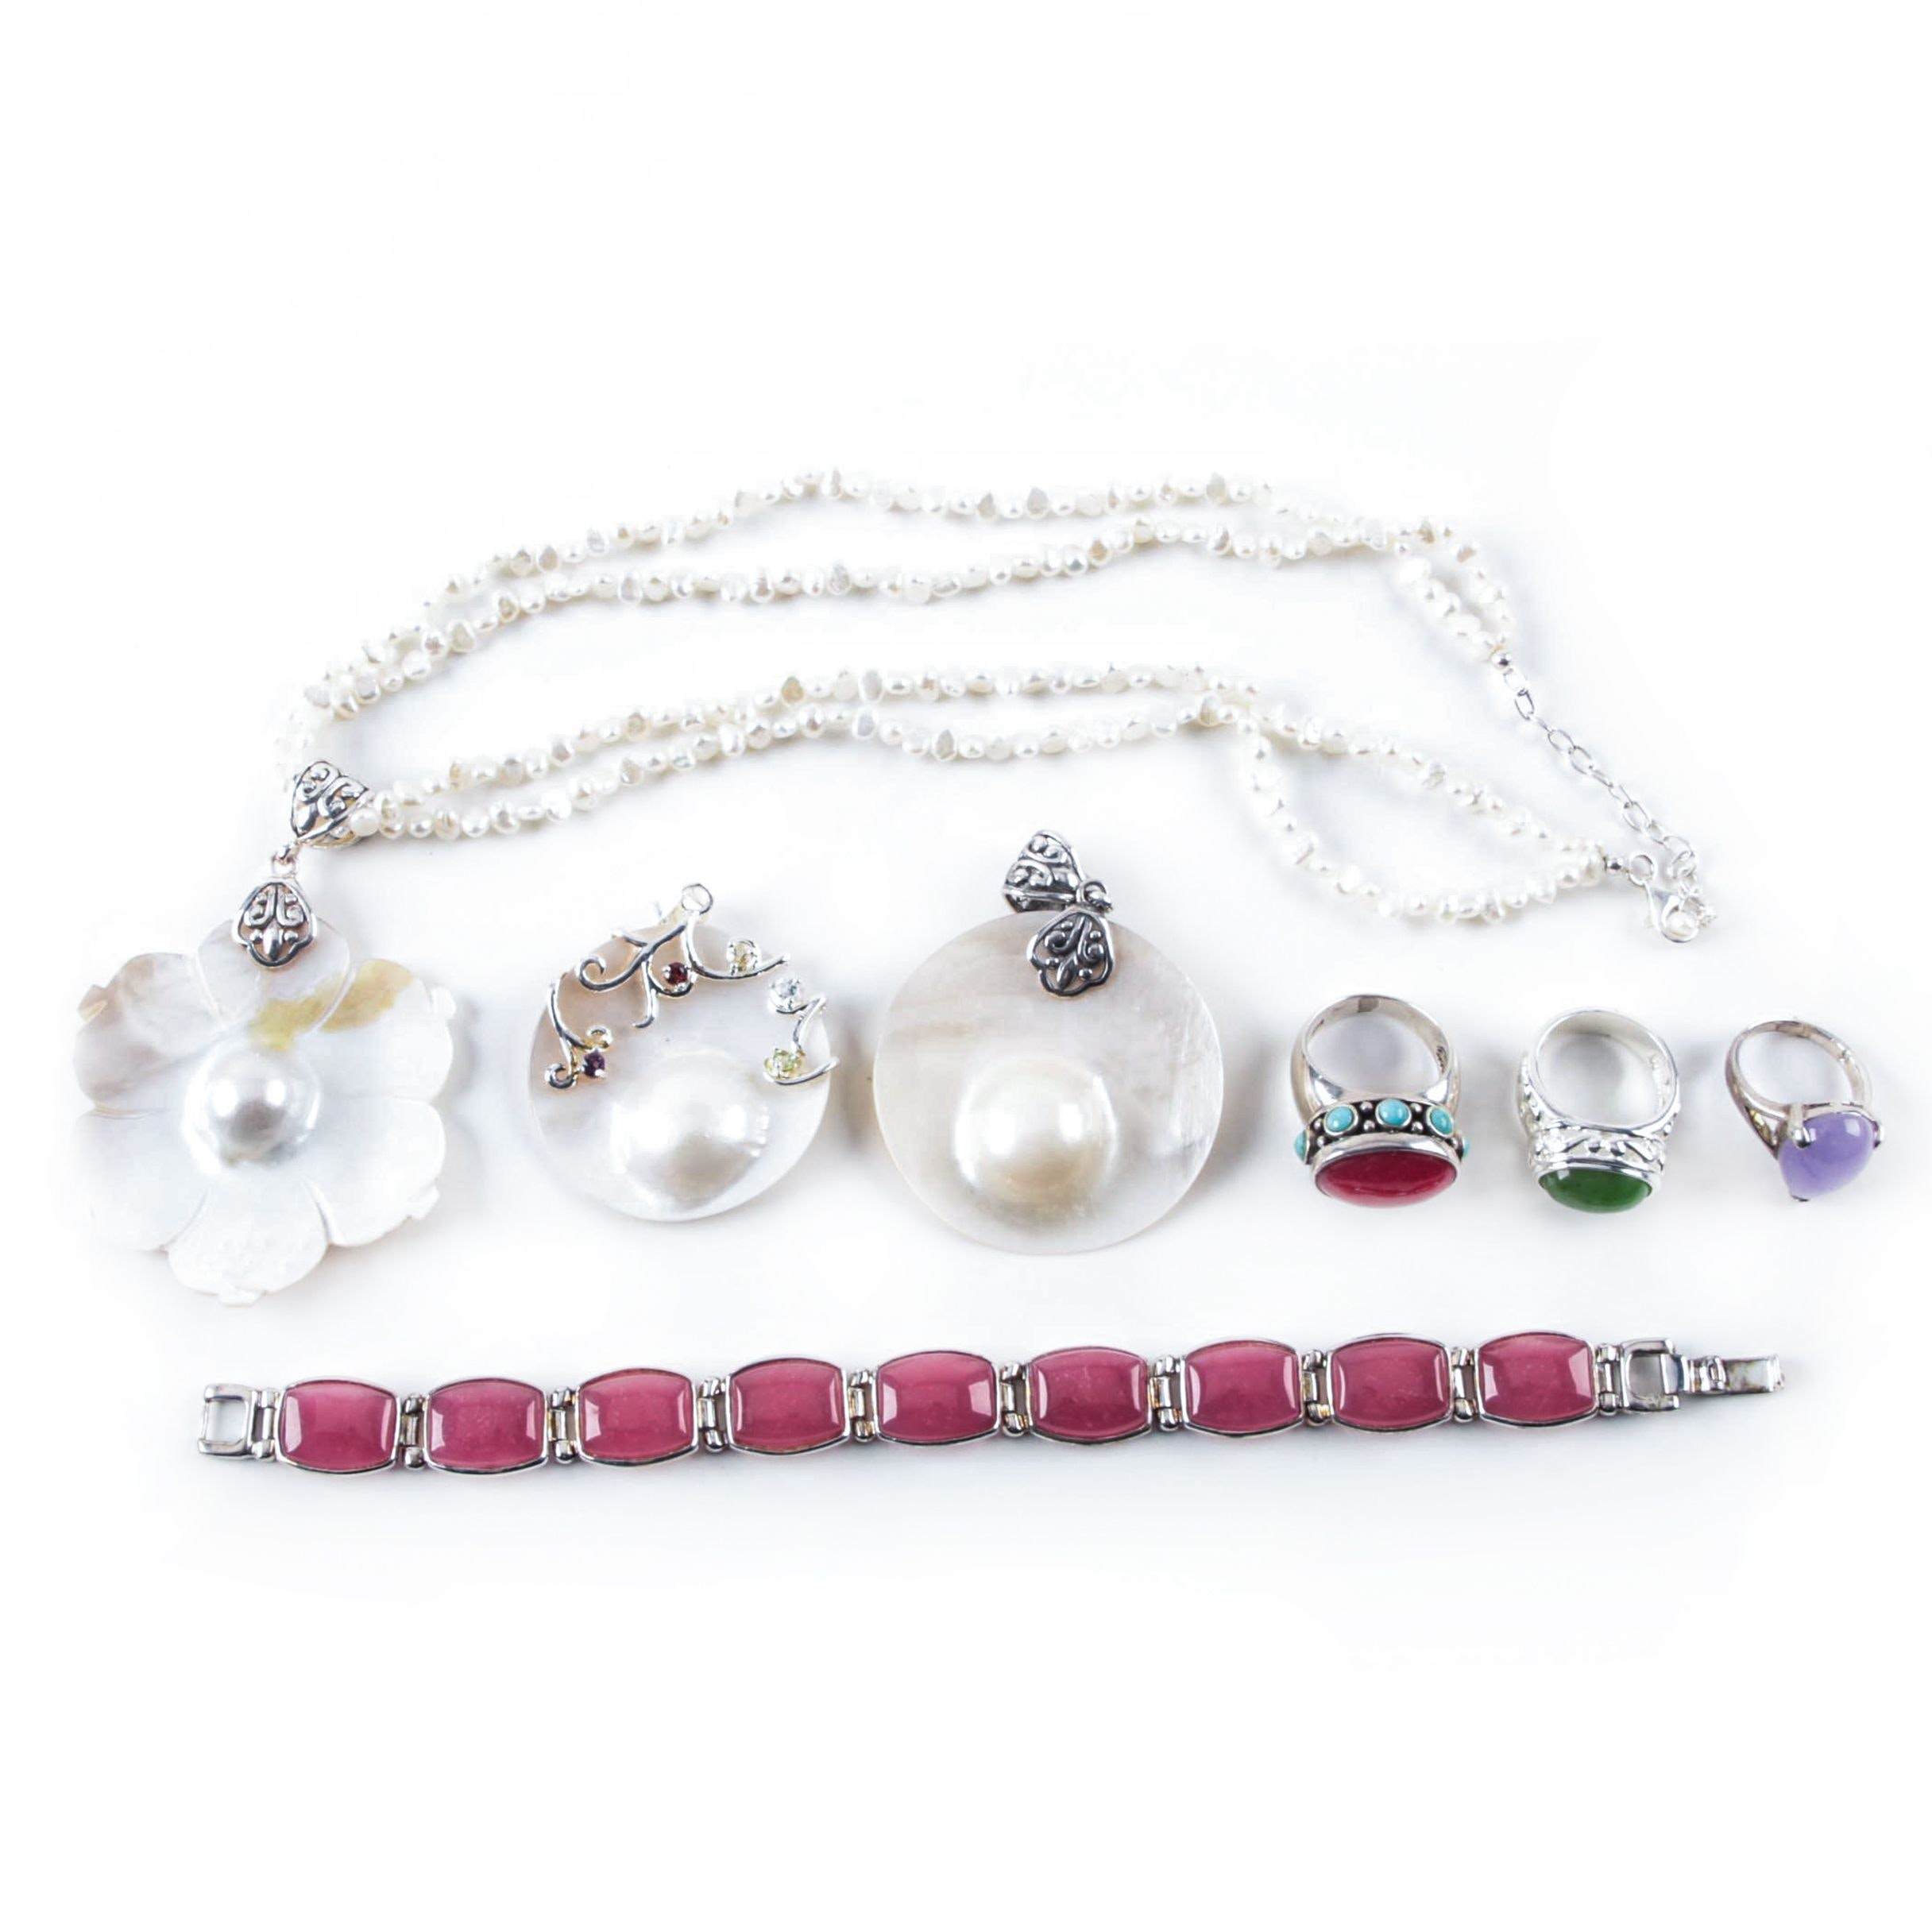 Sterling Silver Jewelry Including Blister Pearls